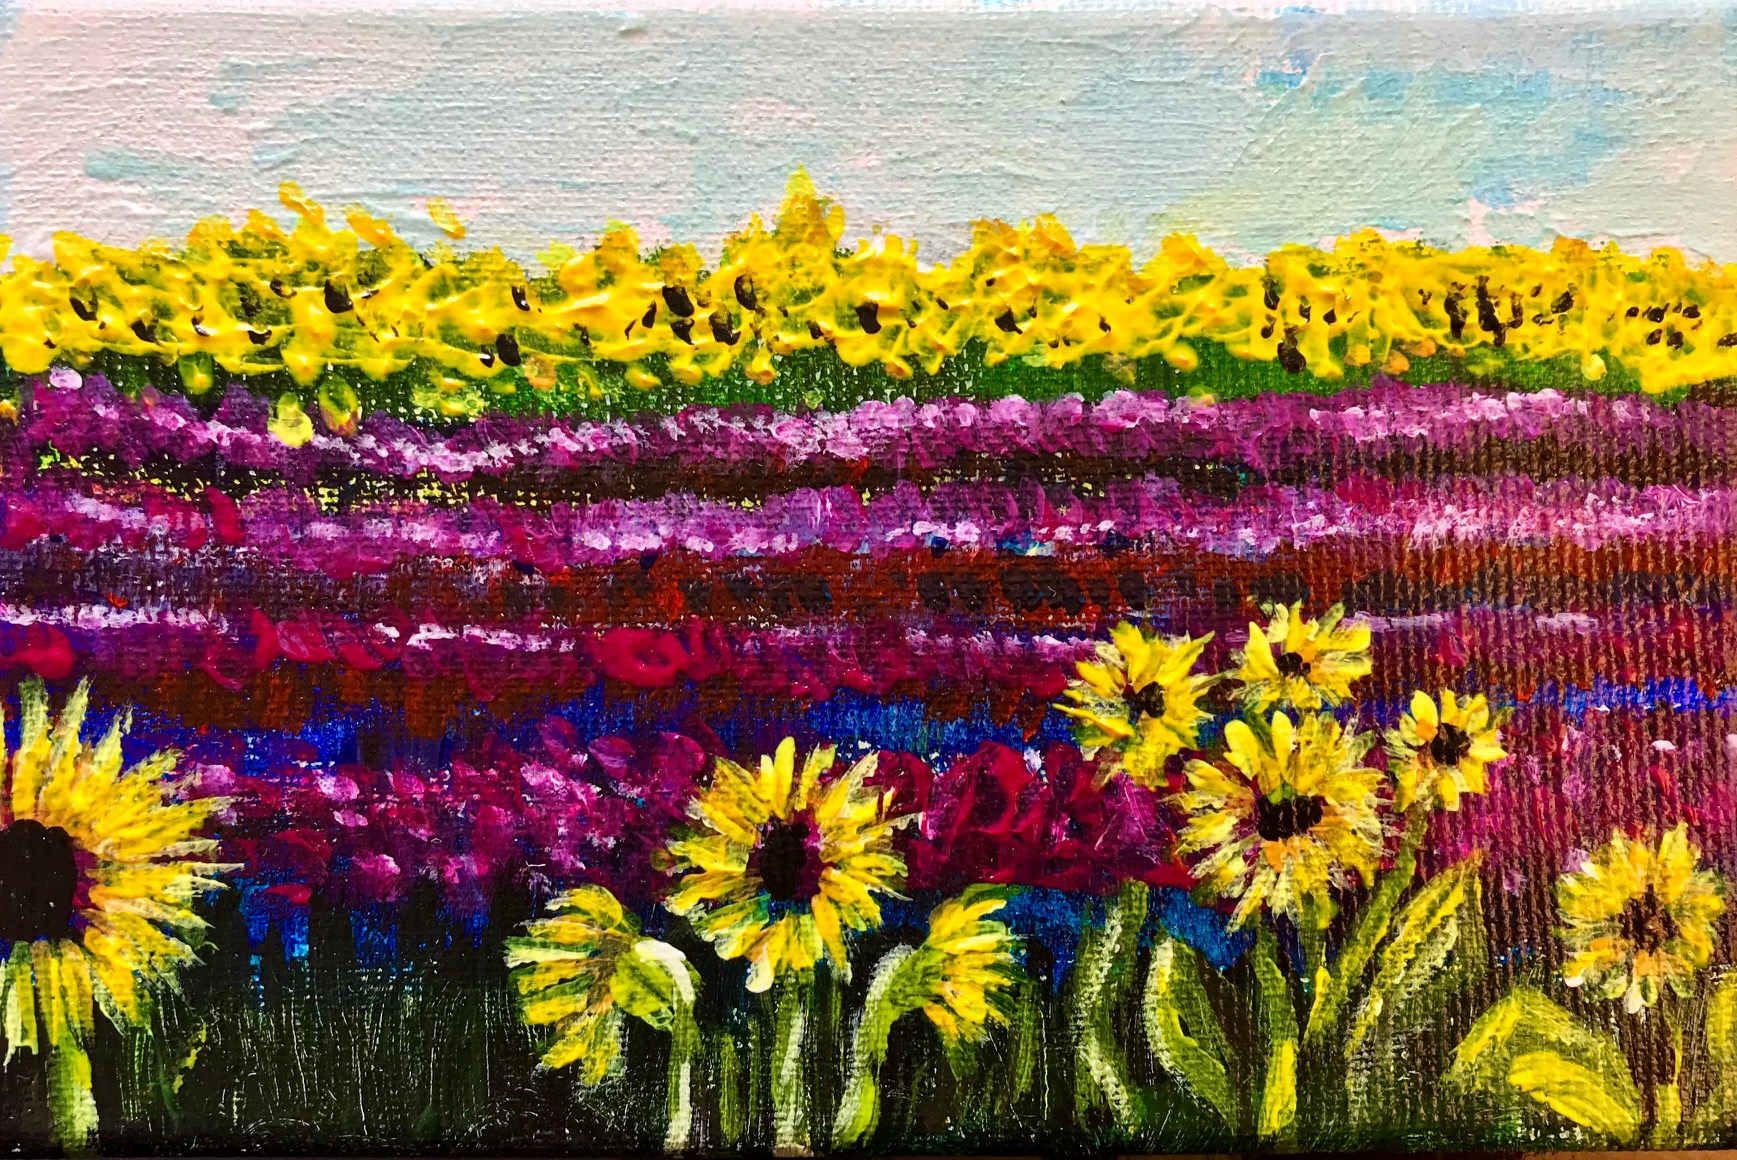 Stylised sunflowers n foreground with purple stripes representing lavender field.